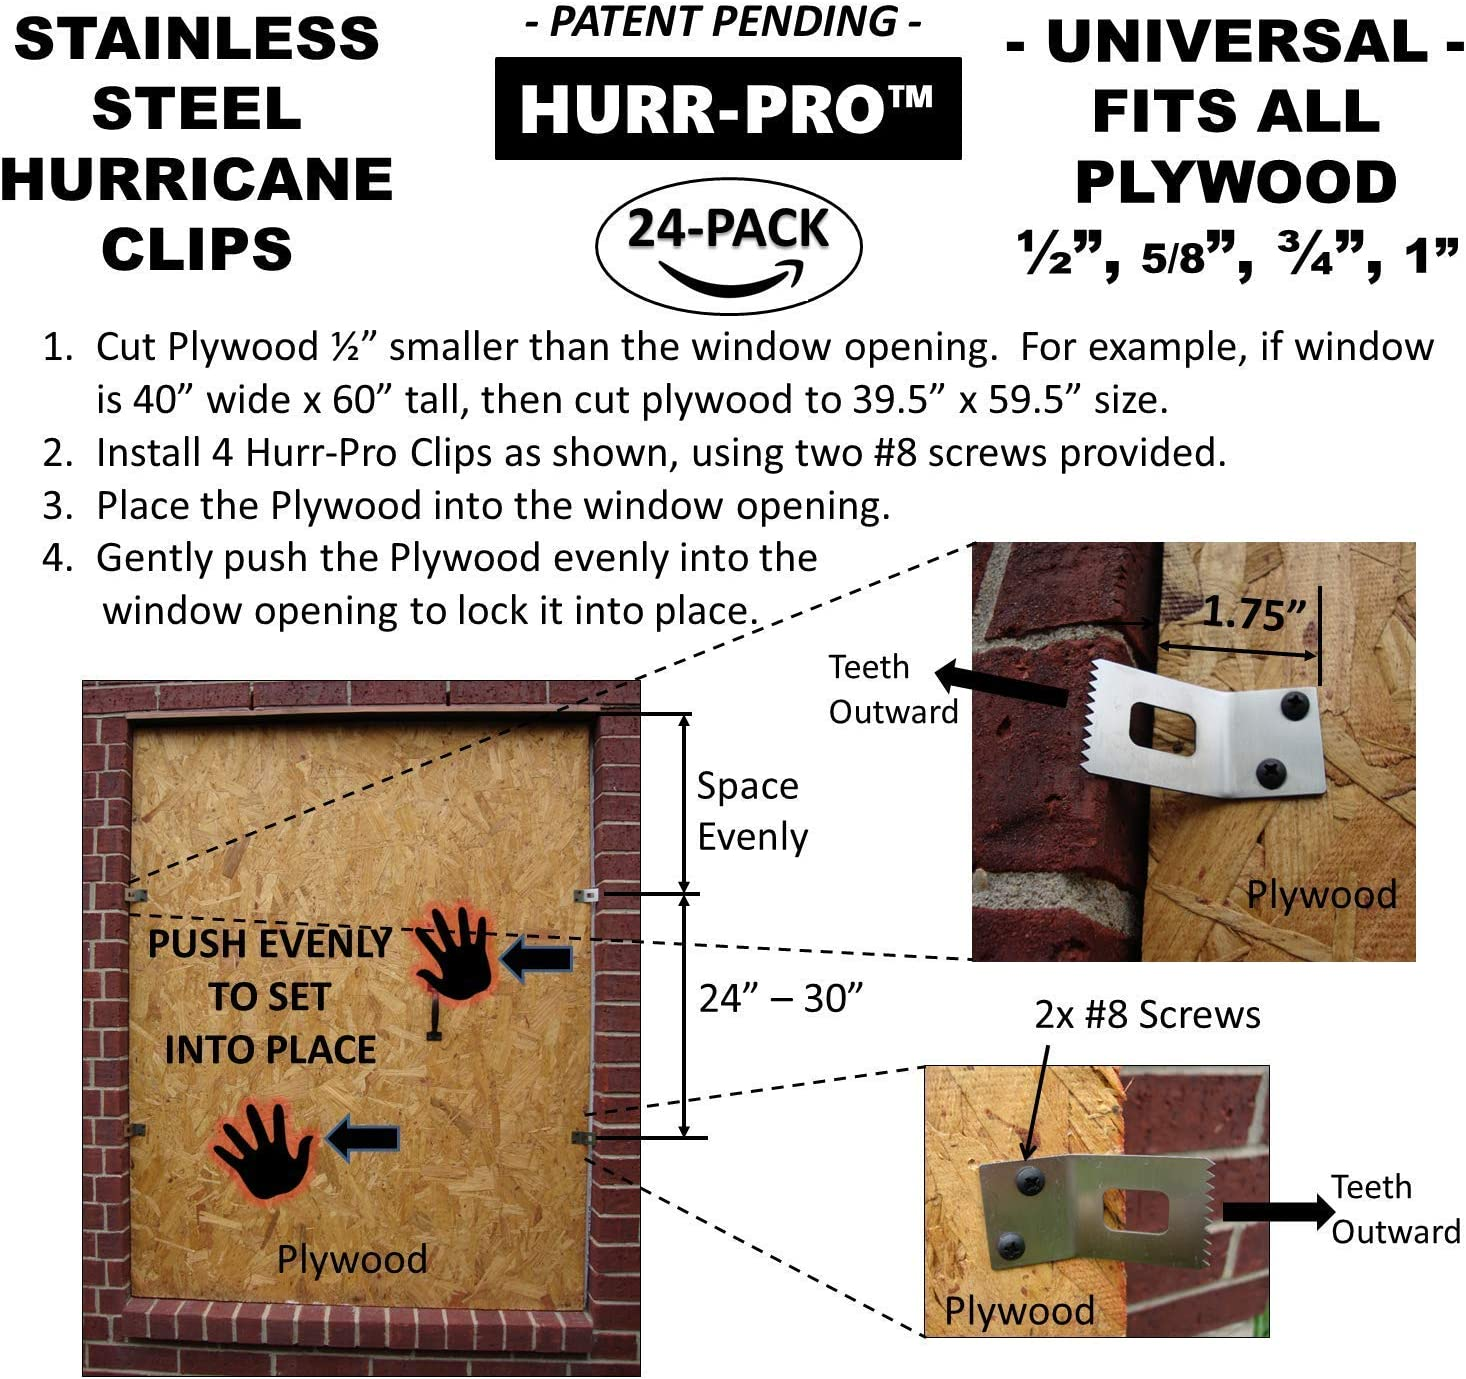 Universal Hurricane Window Protection Clip Reusable One-Size-Fits-All Hurricane Clip FIRELIGHT275 EZ Install 24-Pack for 6-Windows Heavy Duty Stainless Steel